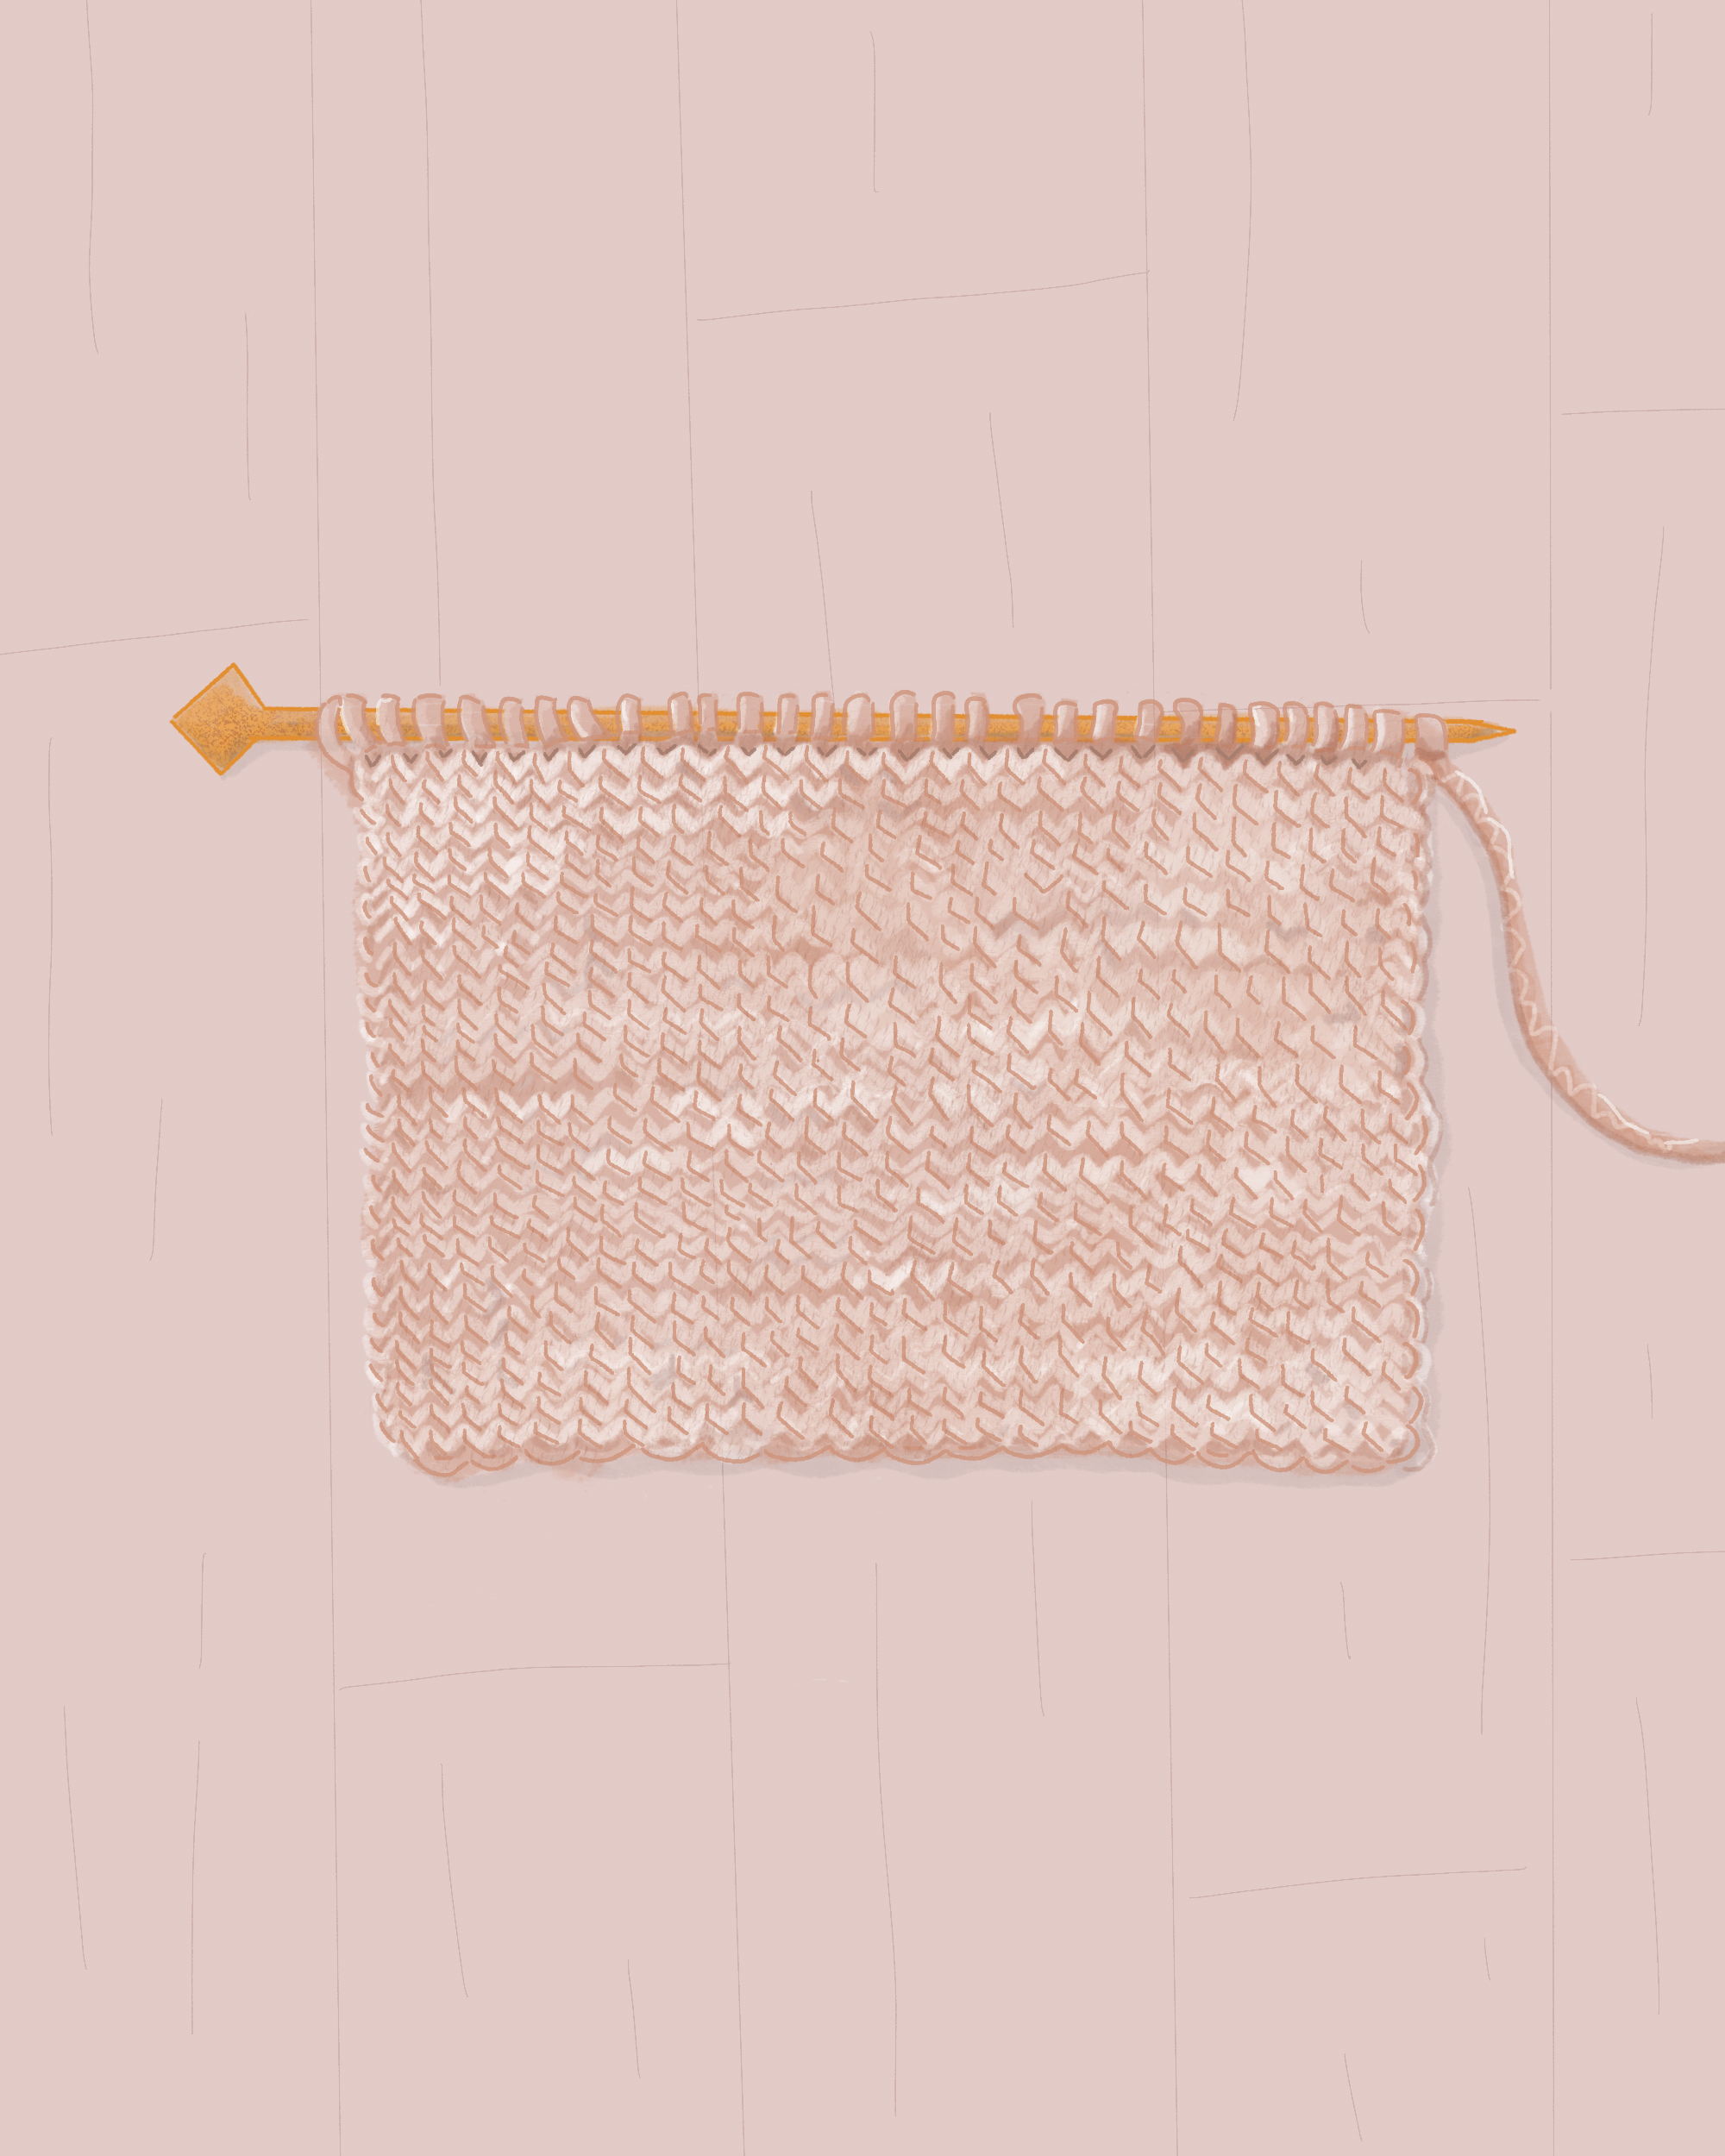 stockinette stitch in knitting